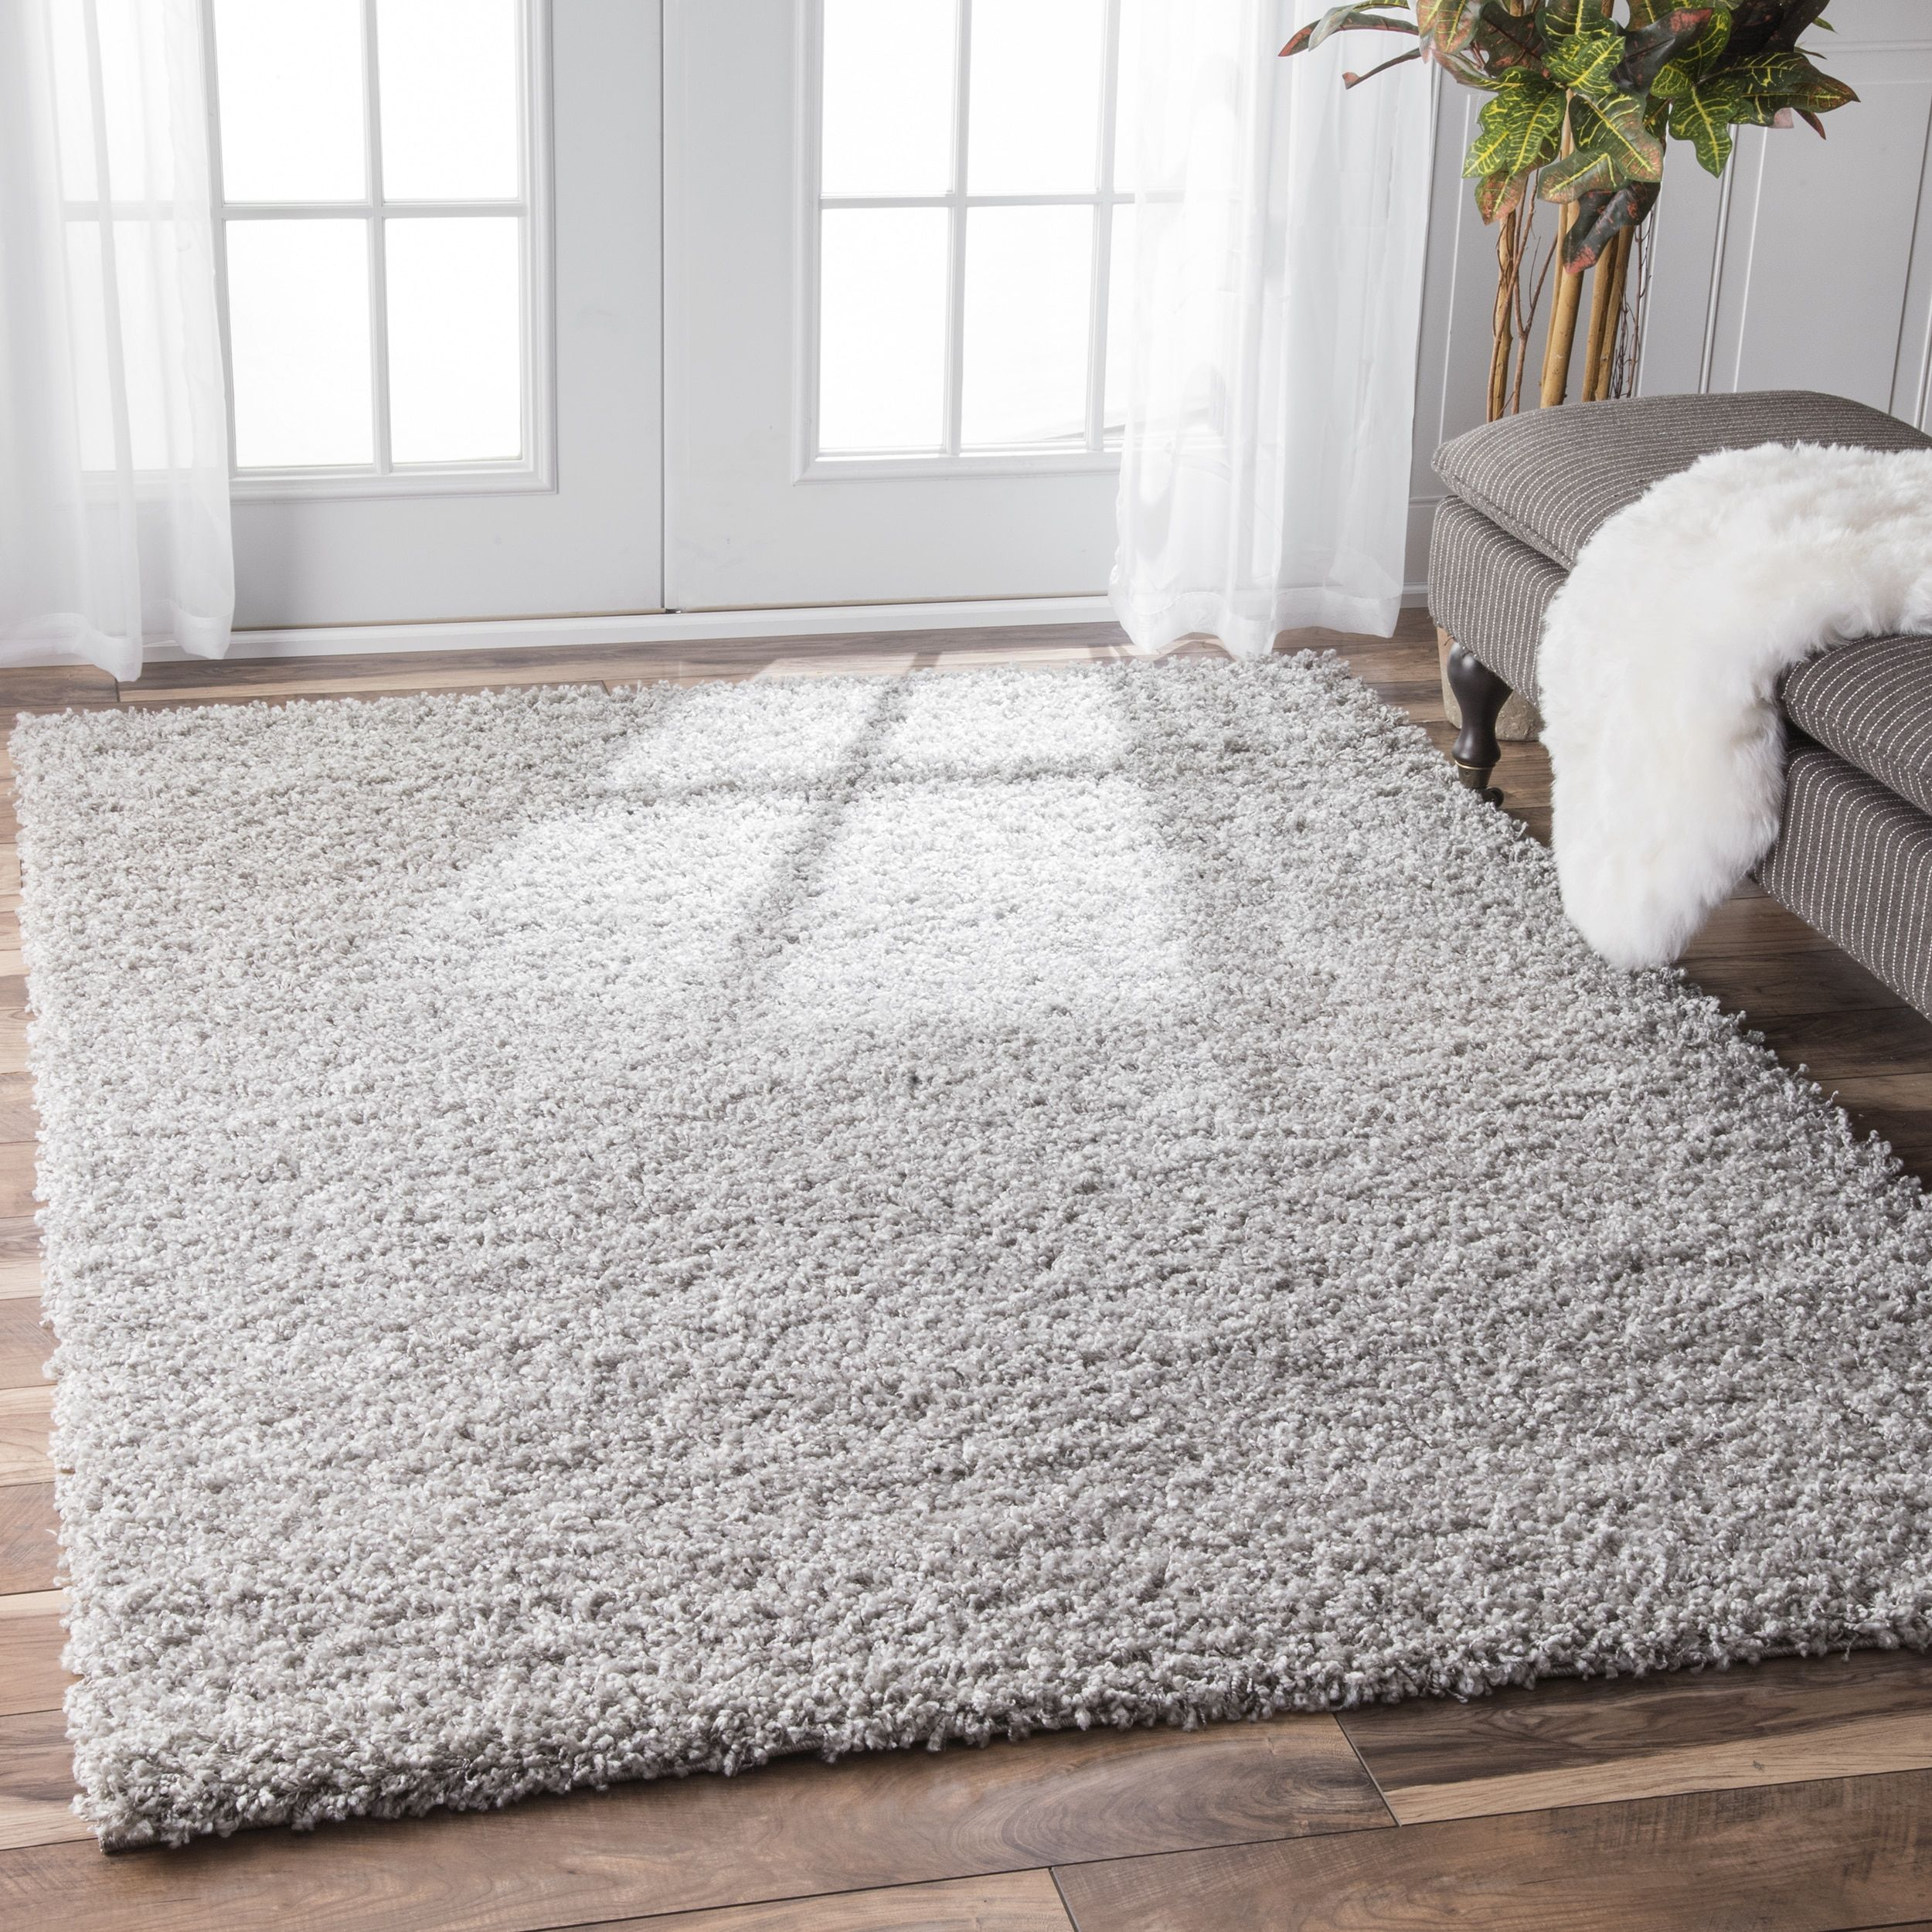 Nuloom alexa my soft and plush solid silver shag rug u x